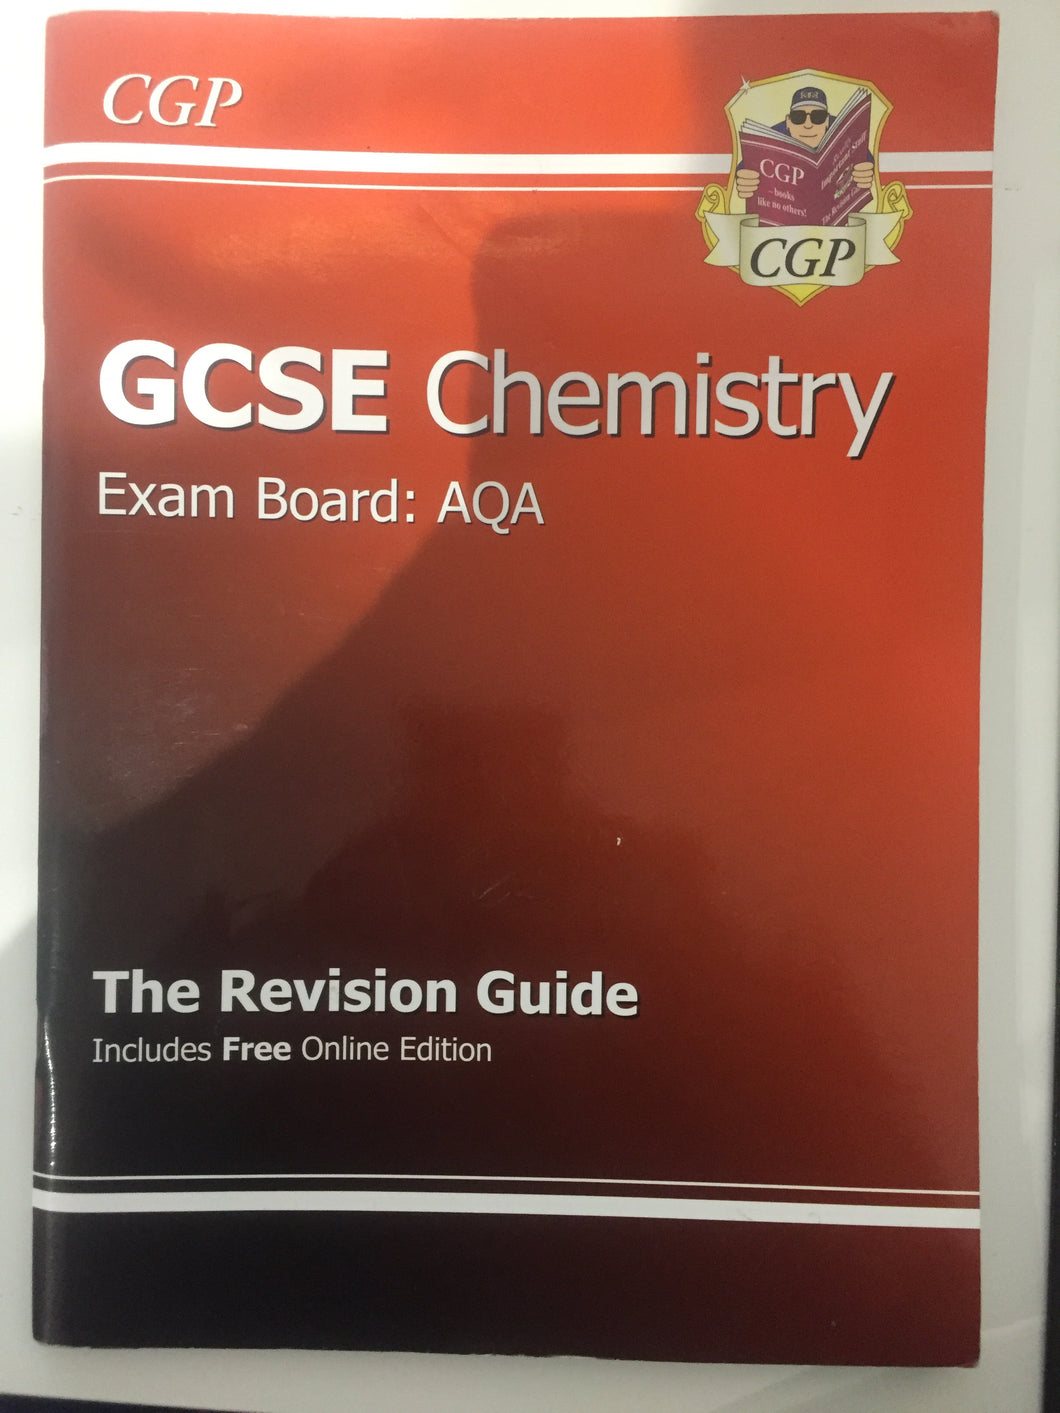 GCSE Chemistry - First Class Learning Bradford